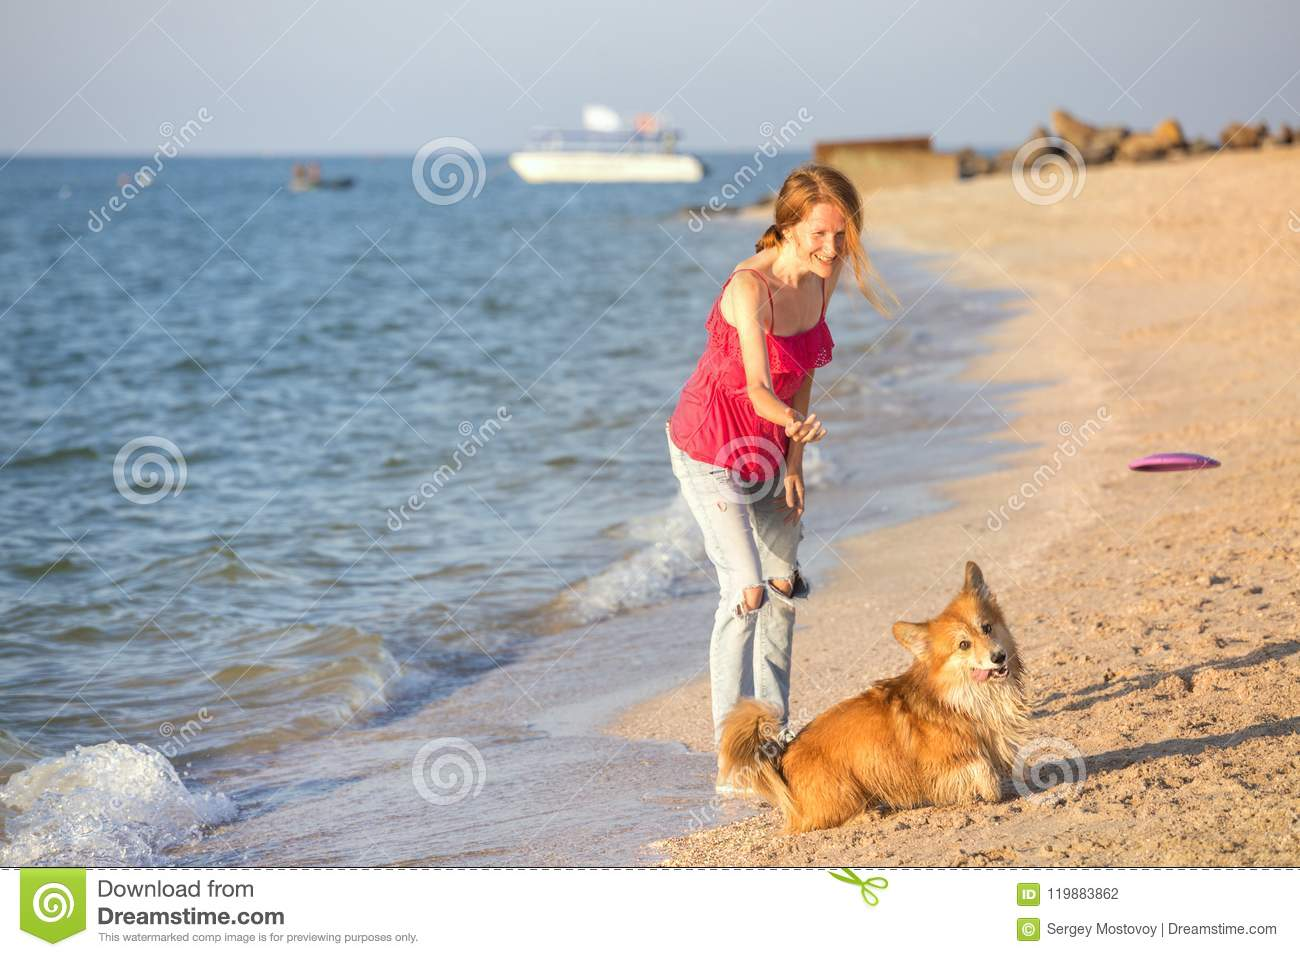 Girl Playing With A Dog On The Beach Stock Photo - Image of emotions